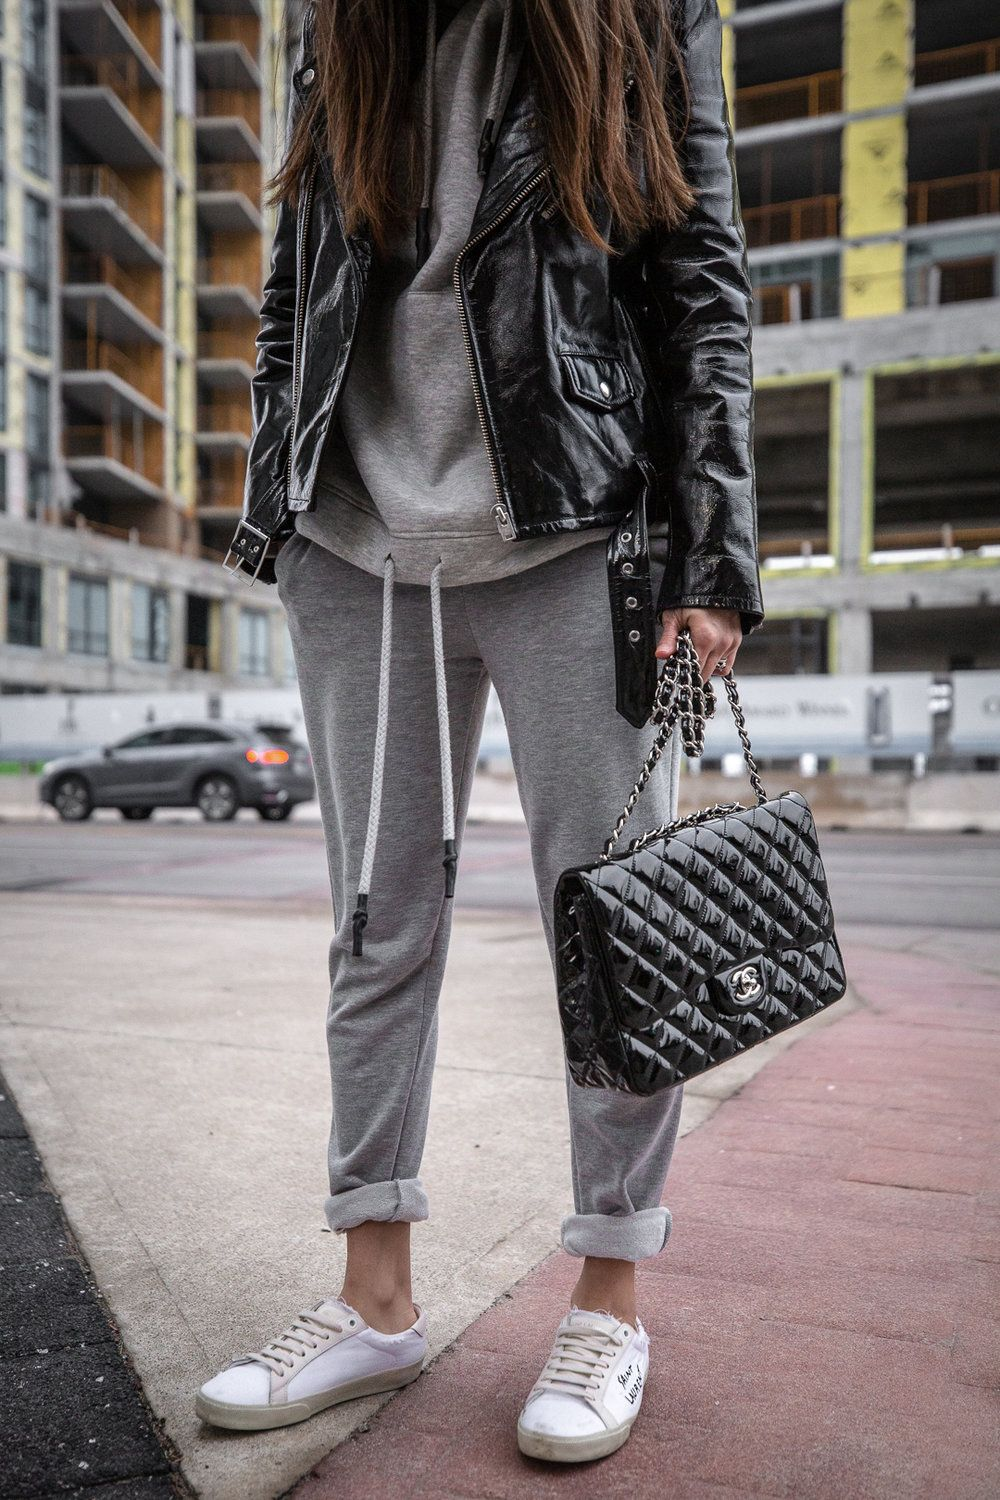 How To Style A Sweatsuit Leather Jacket Outfits Athleisure Outfits Sweatpants Outfit